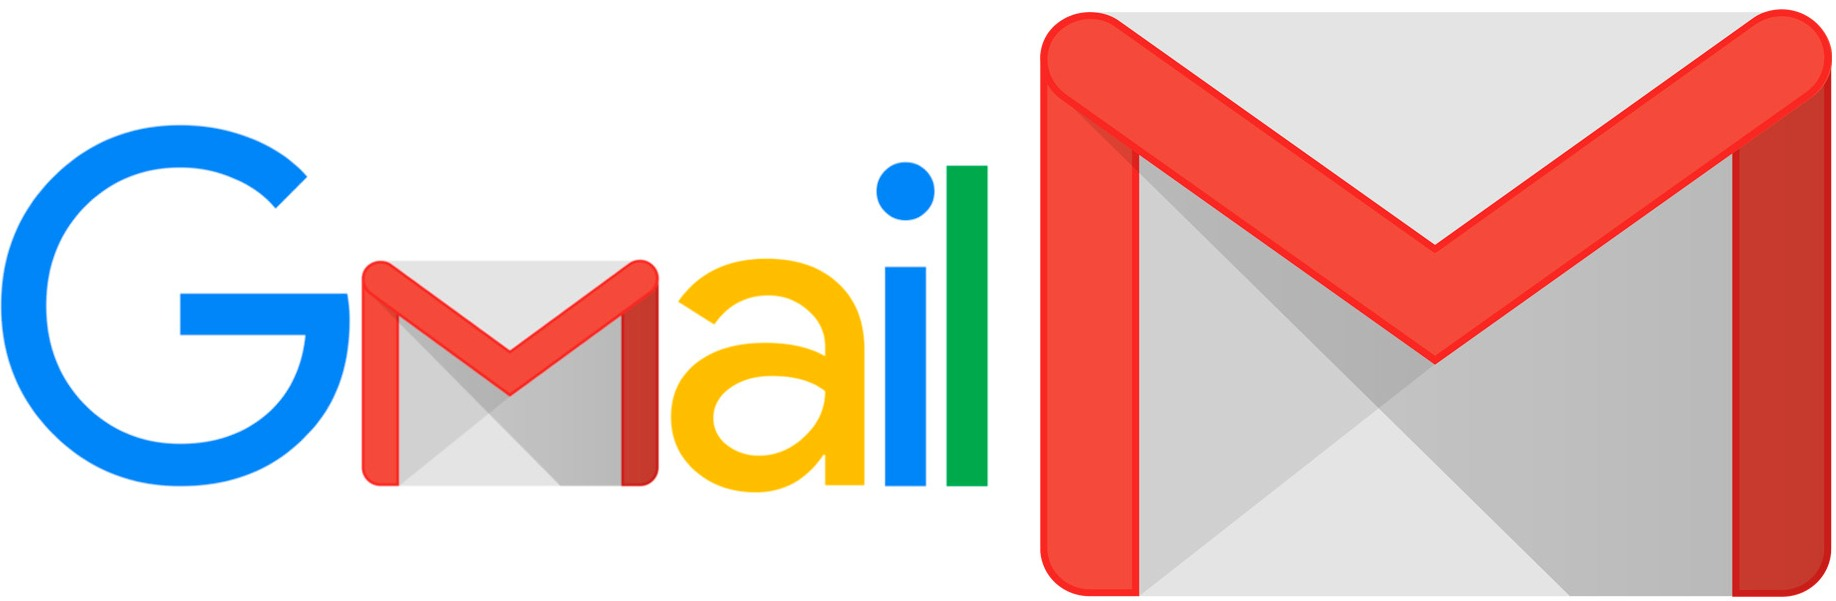 PlanGrid and Gmail Partnership.